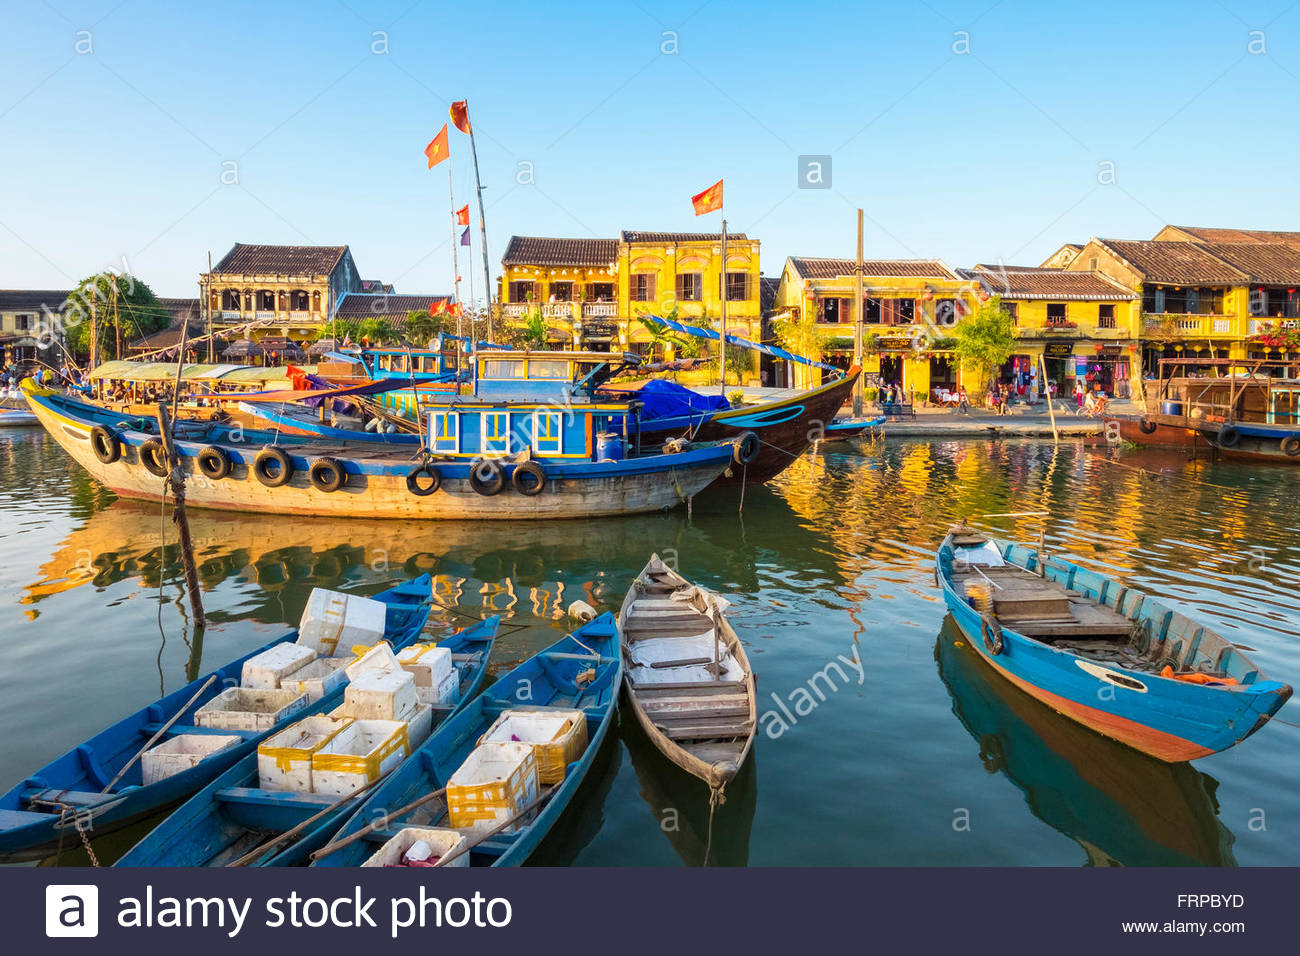 Boats on the Thu Bon River, Hoi An Ancient Town, Vietnam - Stock Image